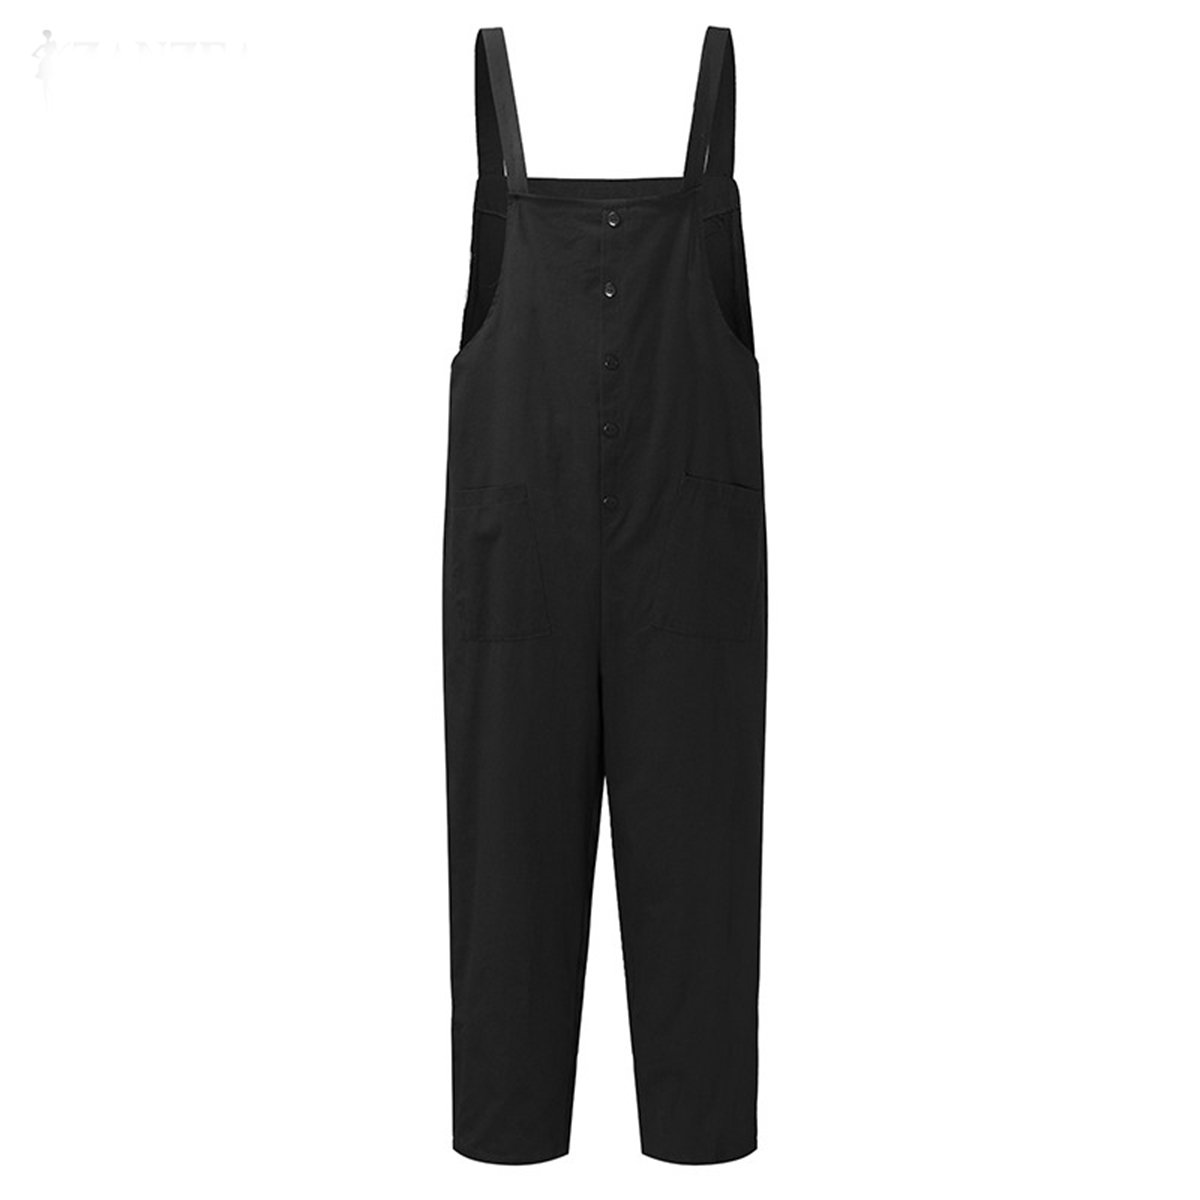 36aa0e787e8 Amazon.com  Celmia Women s Strappy Jumpsuits Overalls Casual Harem Pants  Wide Leg Low Crotch Loose Trousers  Clothing